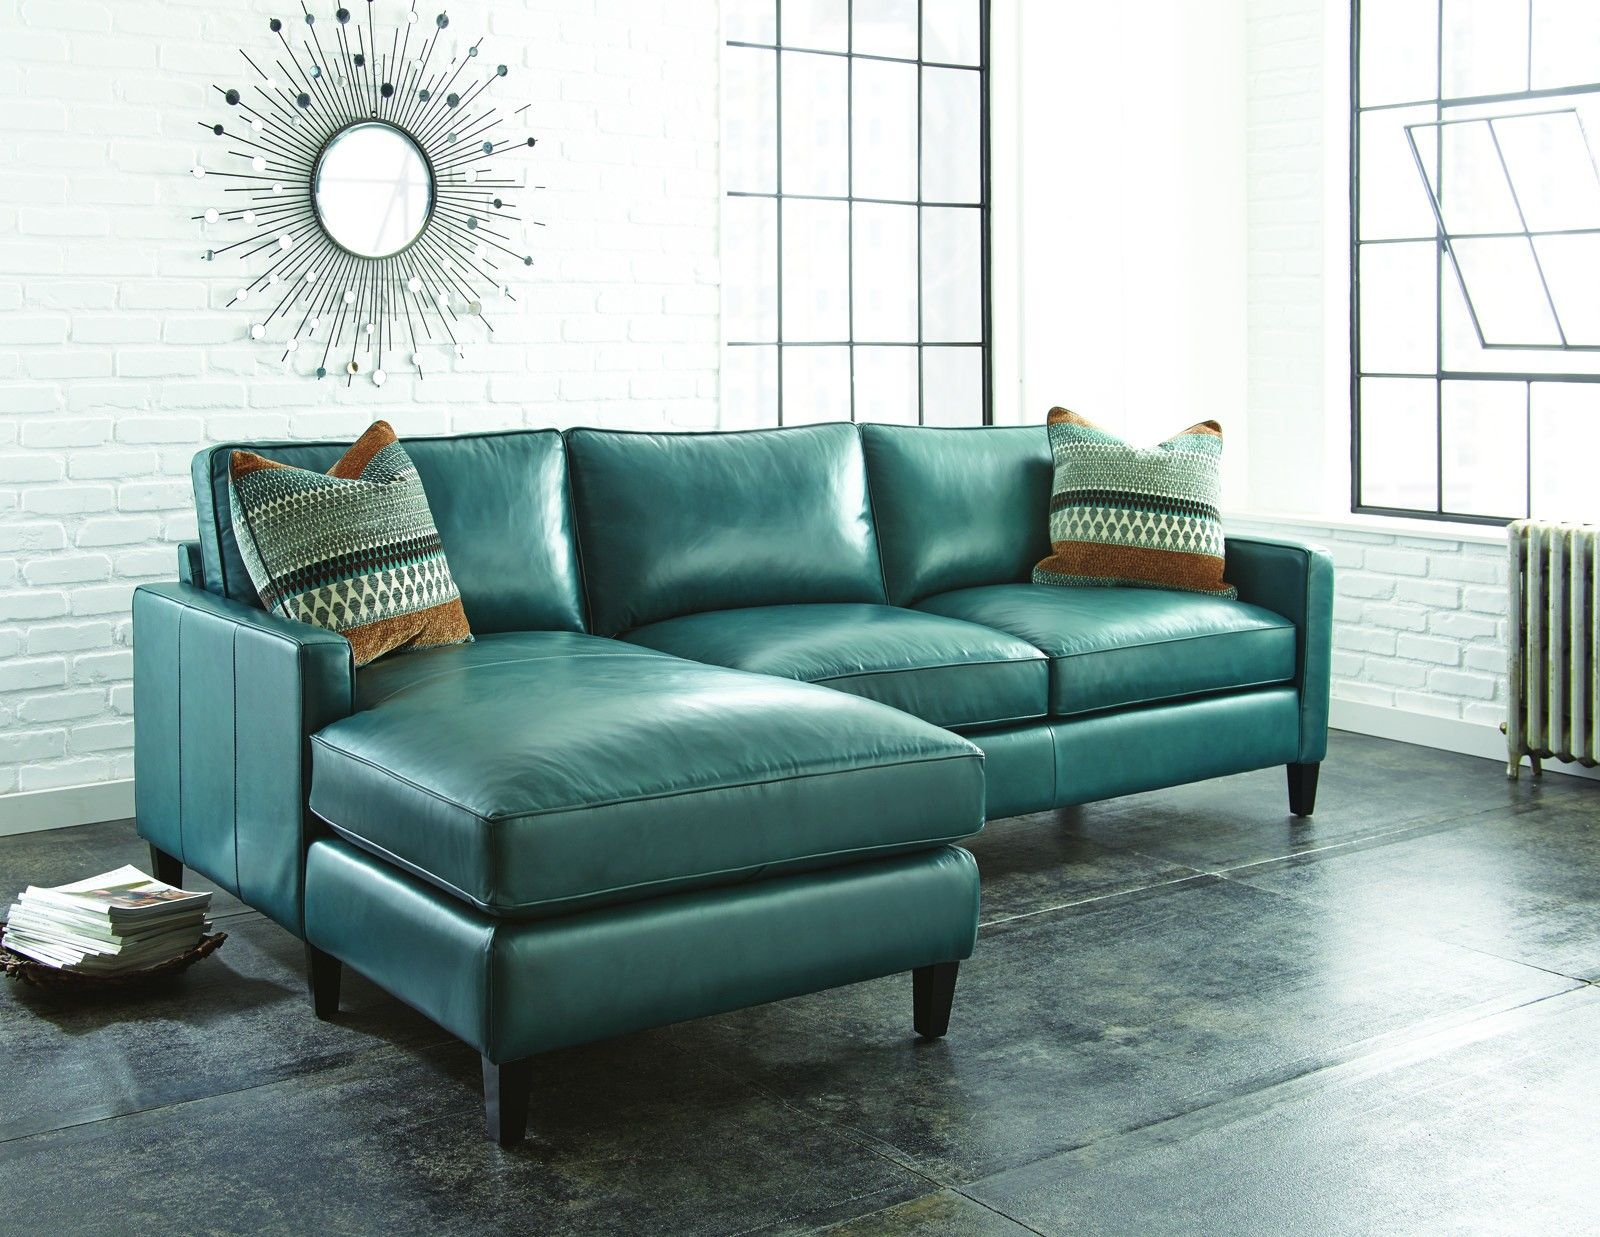 How To Reupholster Leather Furniture In 5 Easy Steps | Living Room Inside Gina Blue Leather Sofa Chairs (Image 13 of 25)